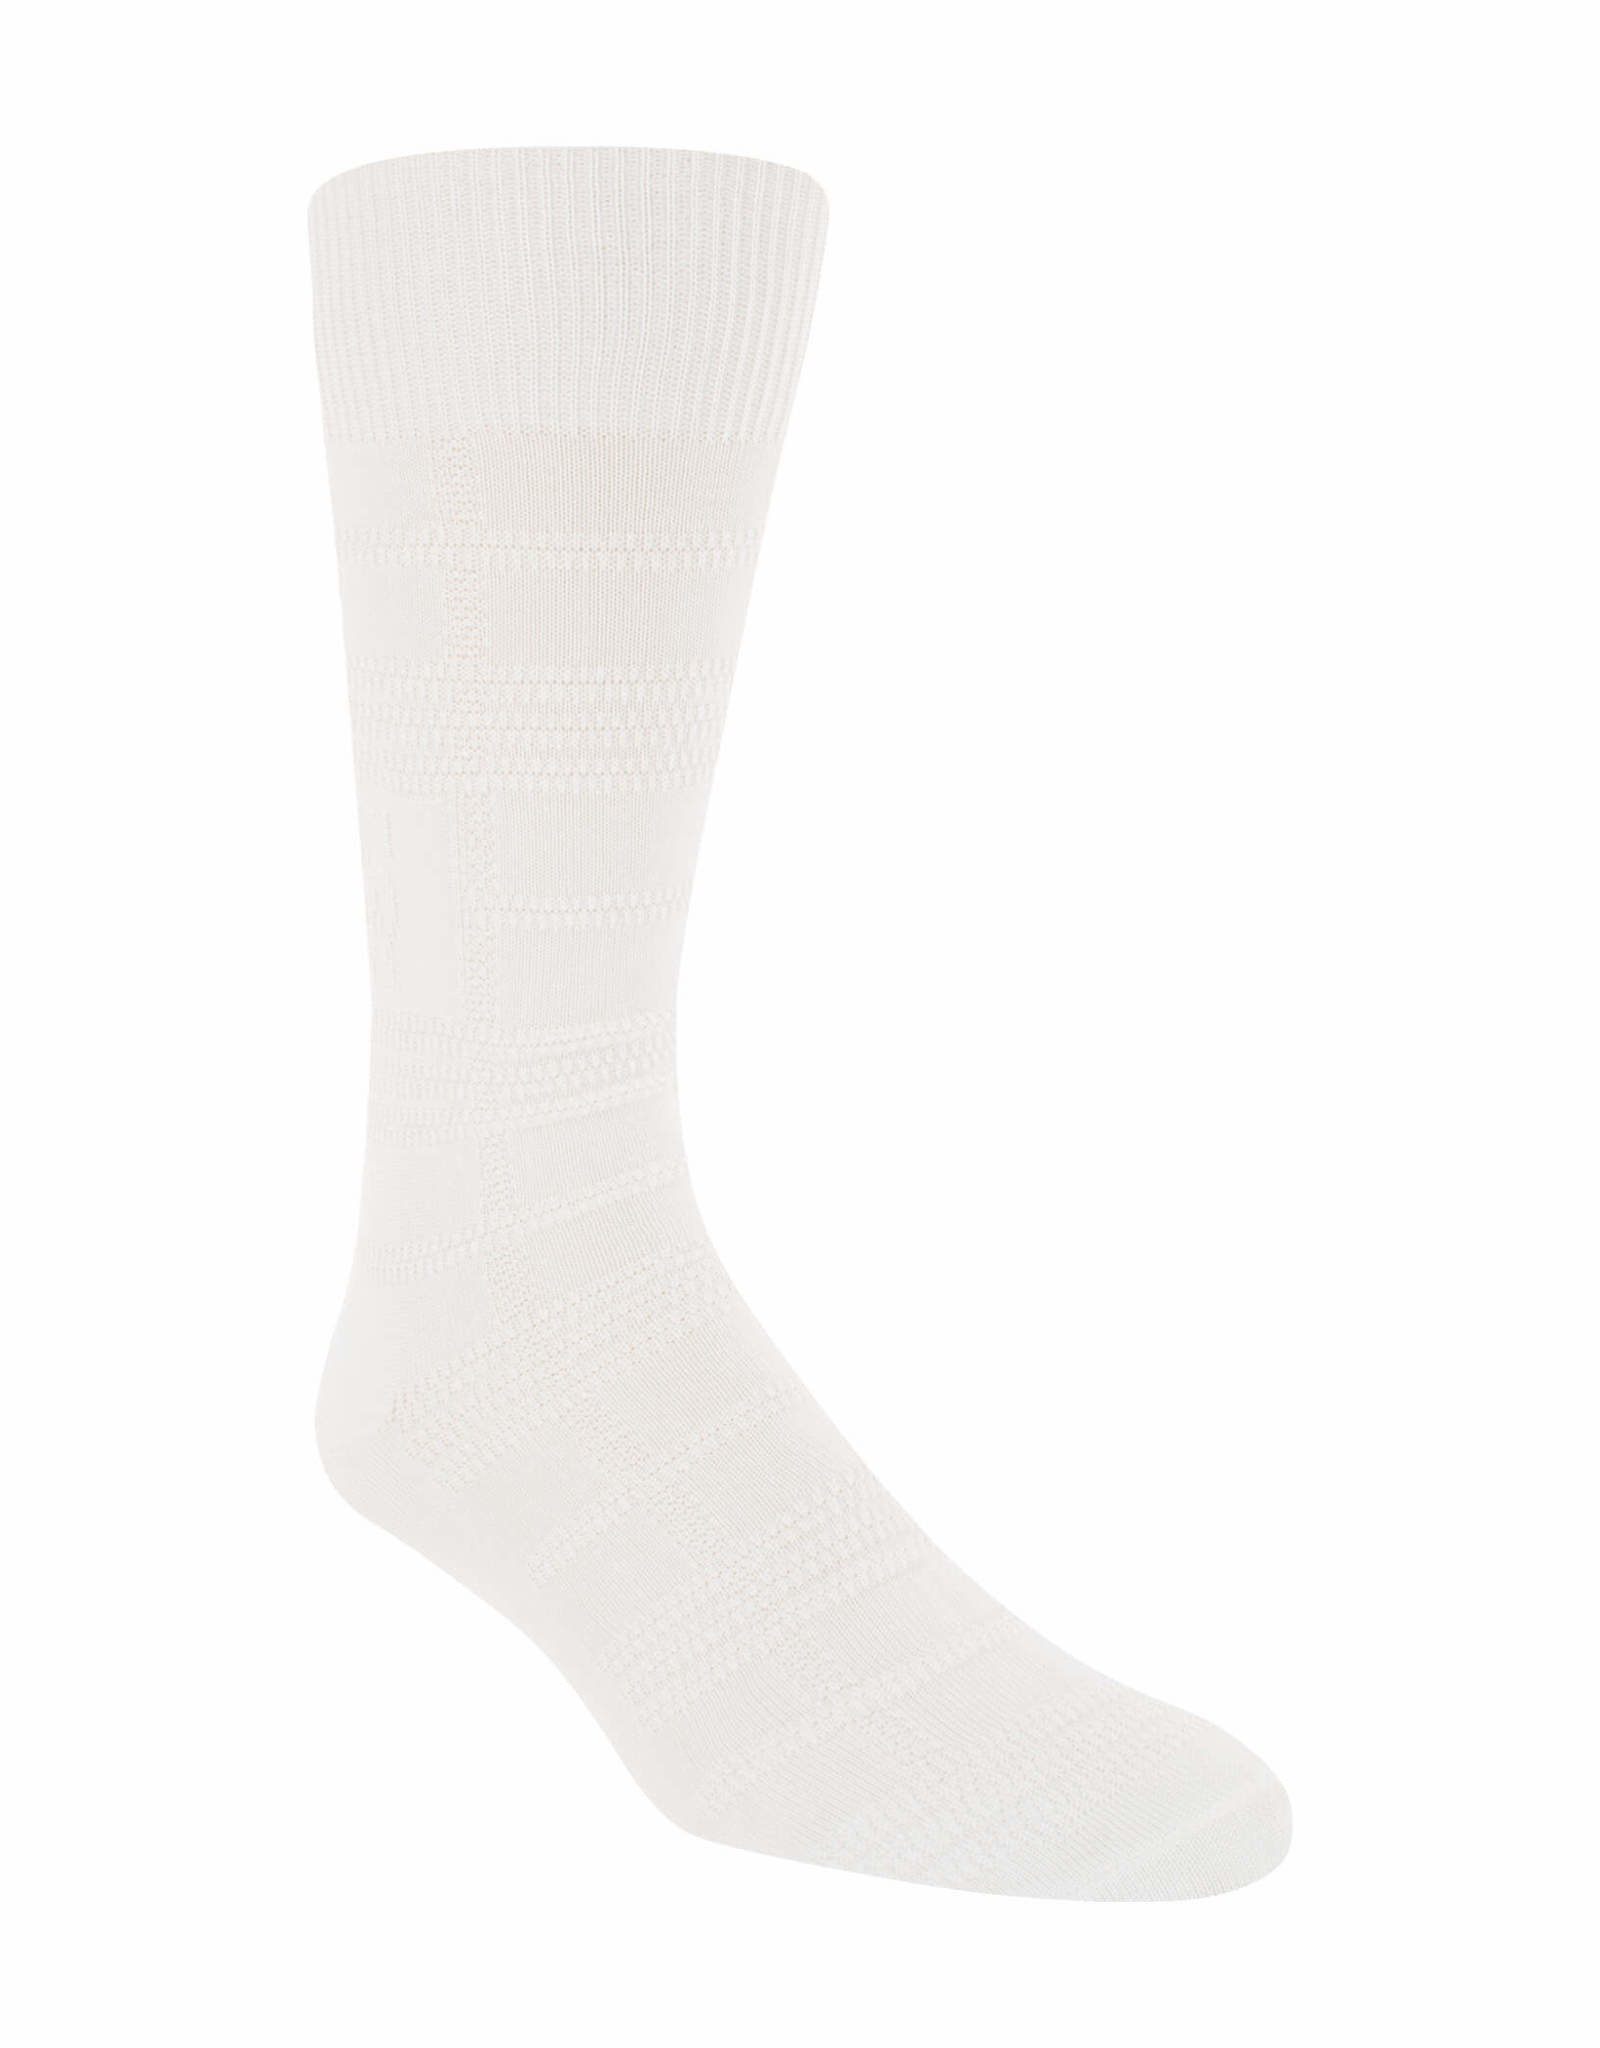 Stacy Adams Socks Stacy Adams Gemstone For Size 8-12.5 White